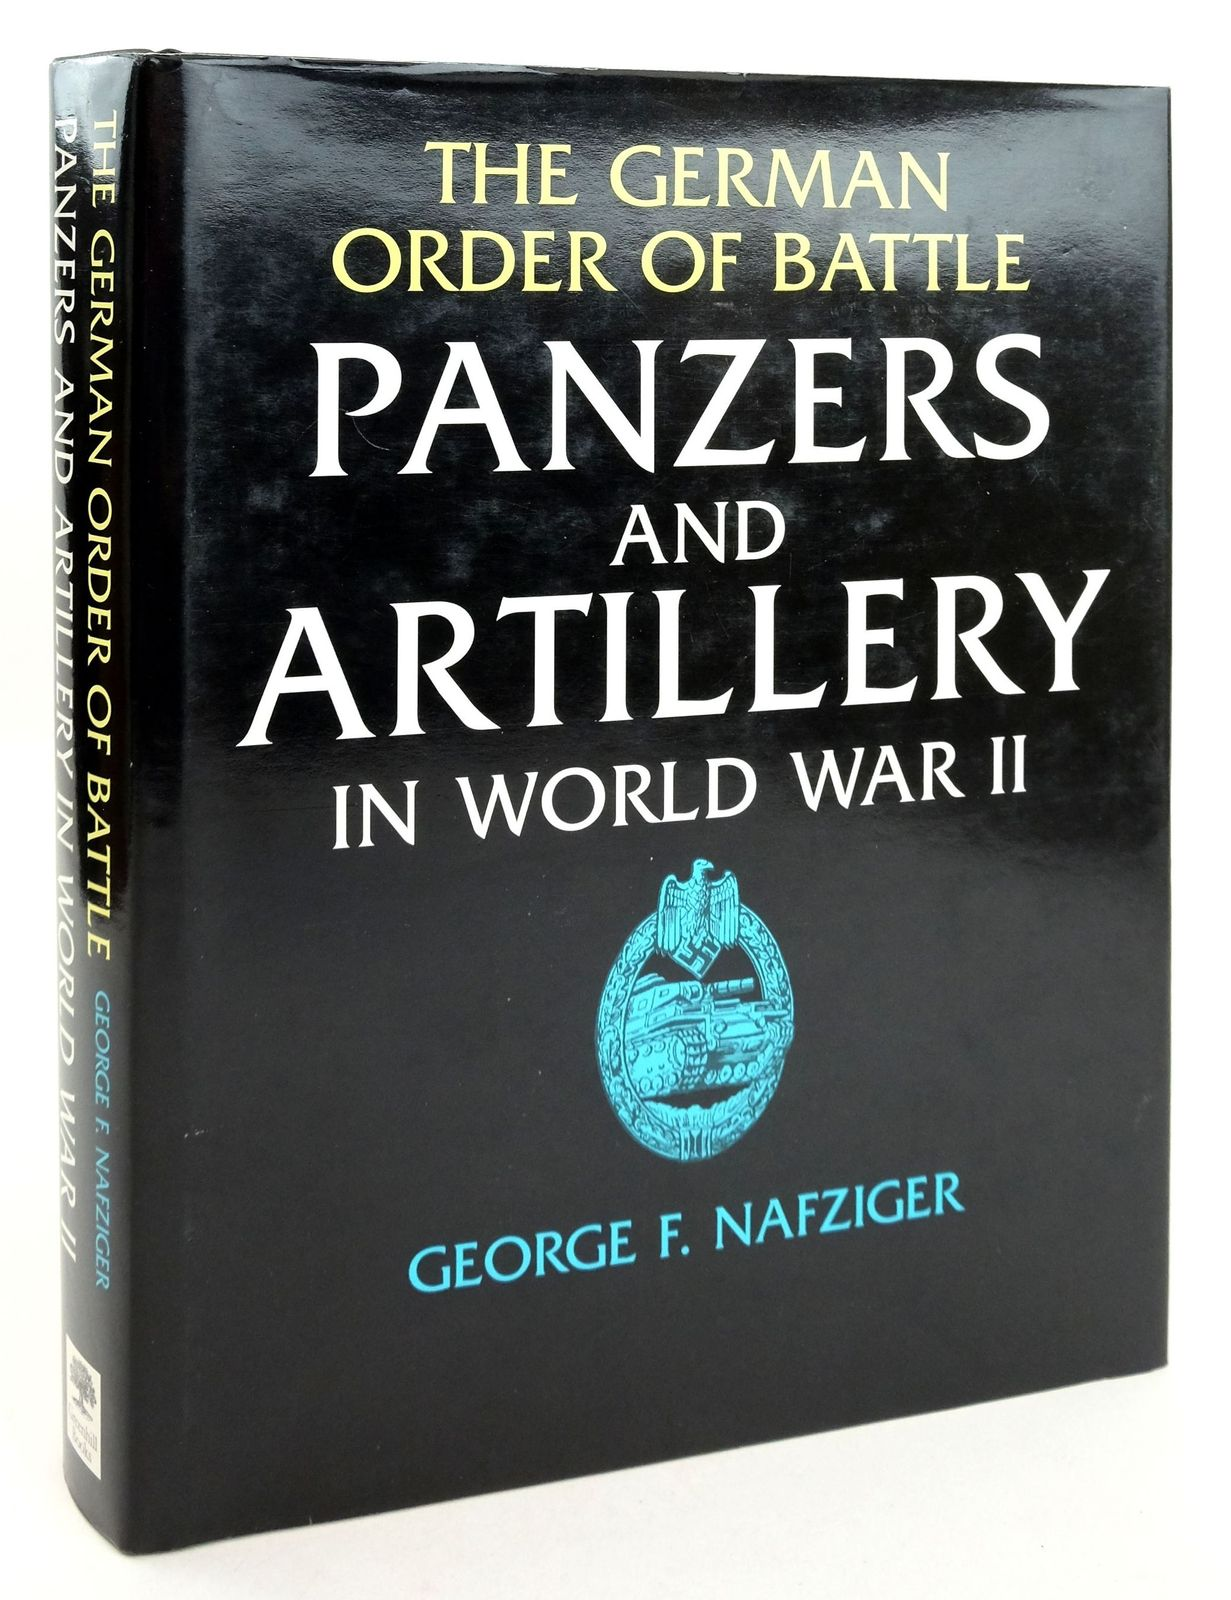 Photo of THE GERMAN ORDER OF BATTLE PANZERS AND ARTILLERY IN WORLD WAR II- Stock Number: 1819339